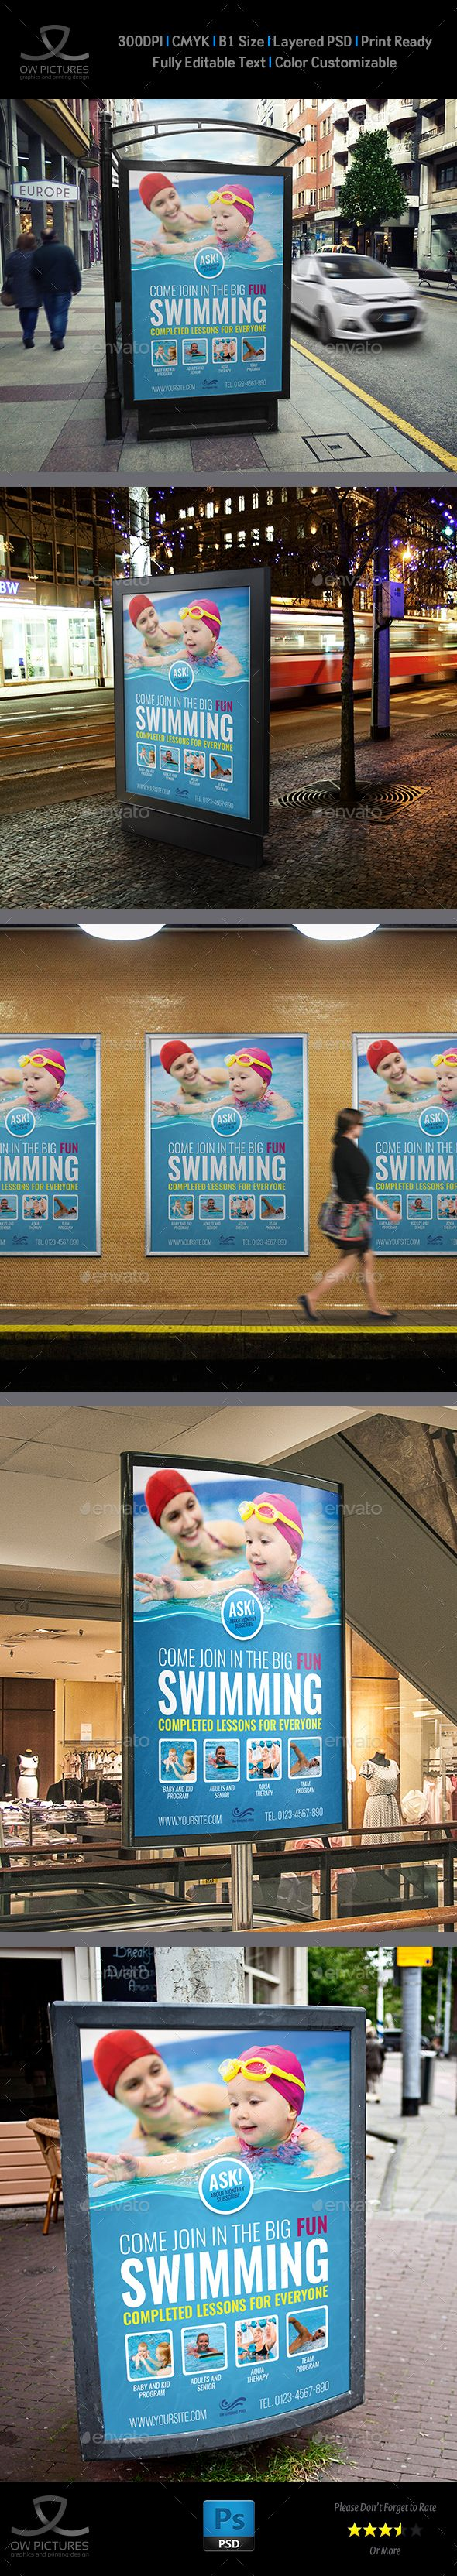 Swimming Poster Template by OWPictures Poster Description: Swimming Poster Templ...